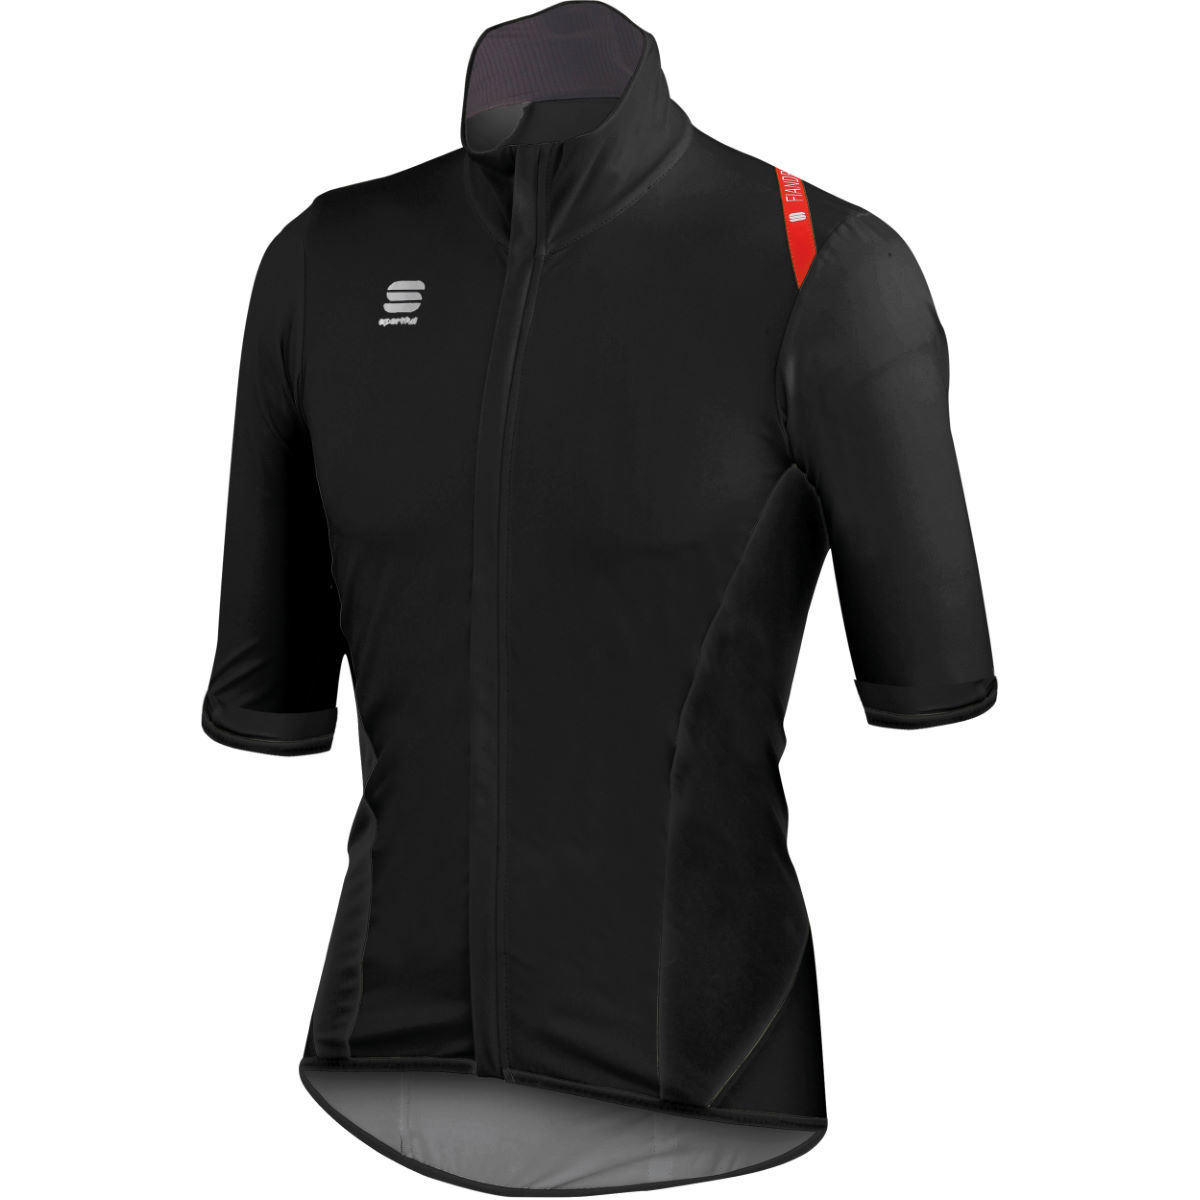 Sportful Fiandre Light NoRain Short Sleeve Jersey - Clearance Red/Black XLarge only.